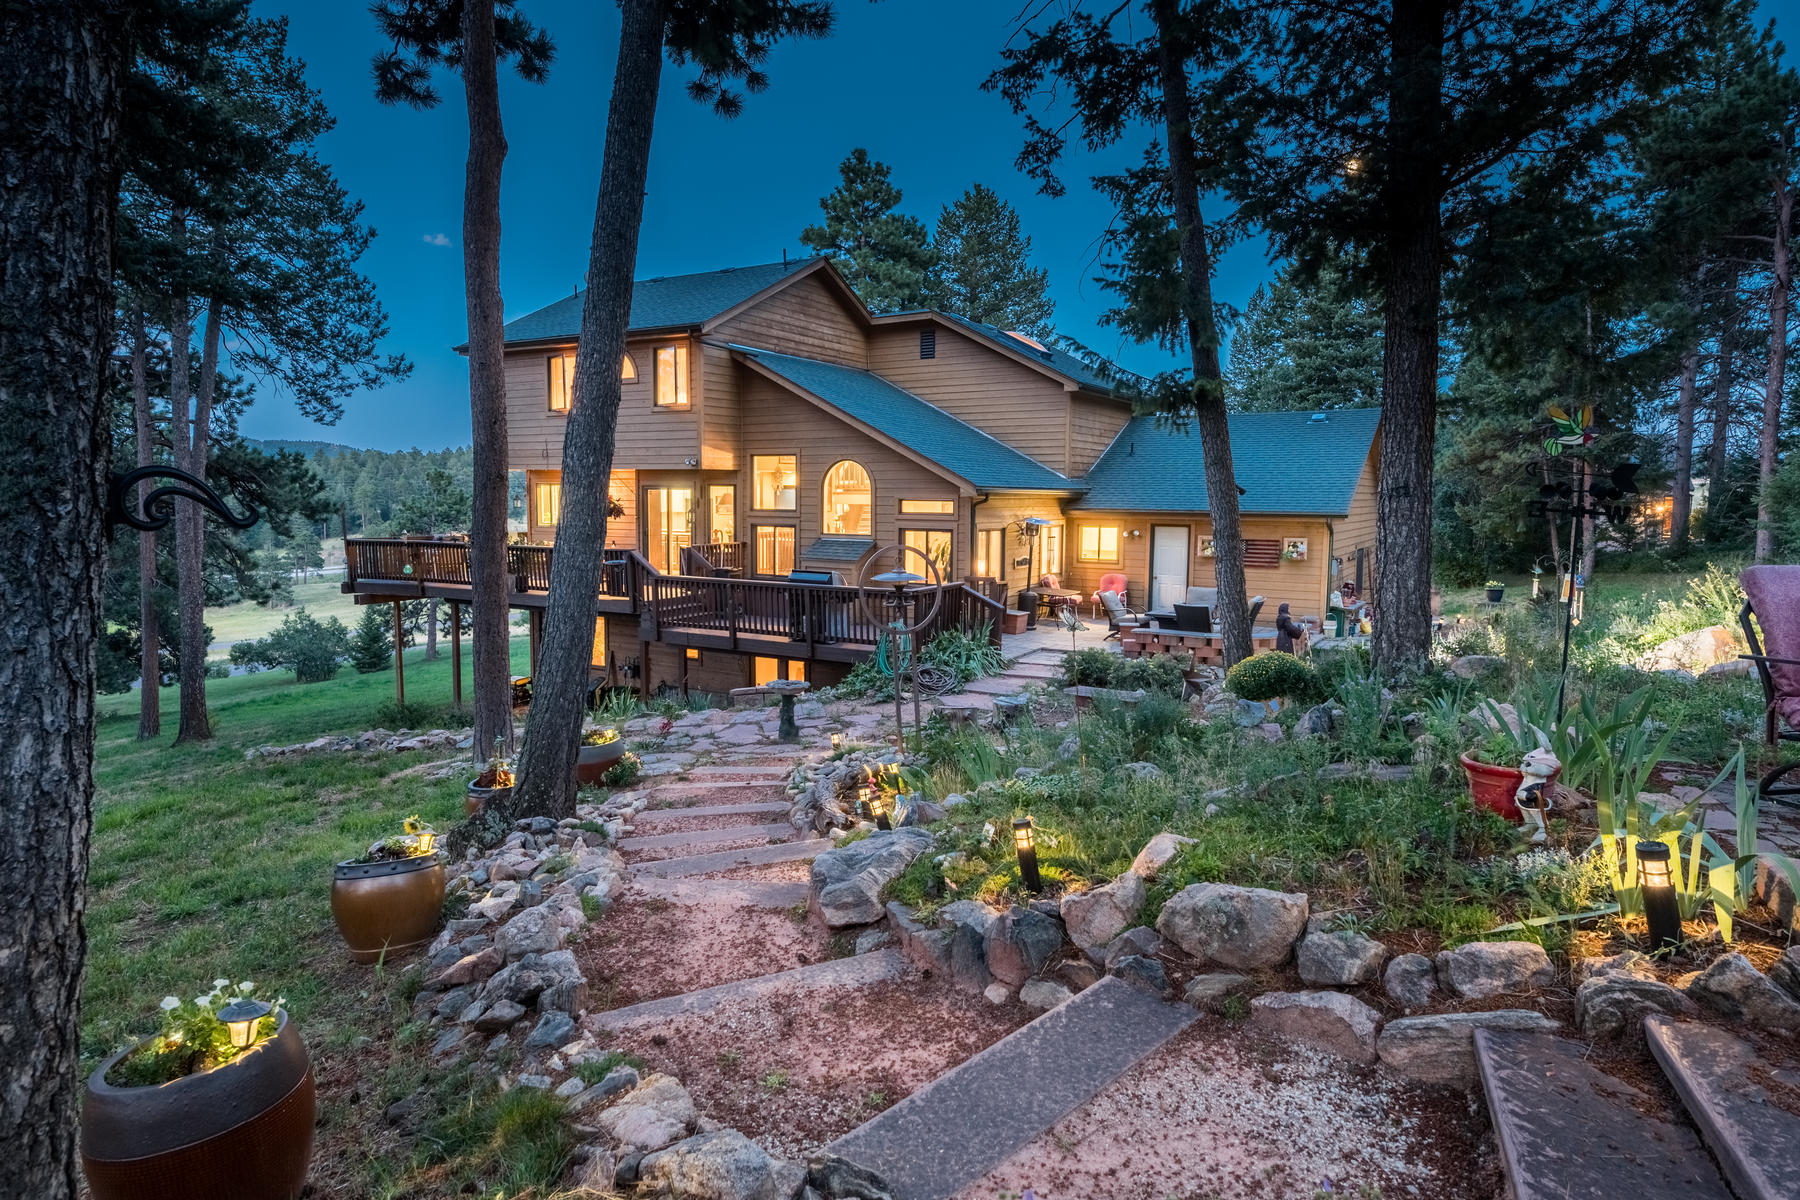 Additional photo for property listing at Stunning Mountain Home 30 Minutes From Denver 8171 S Homesteader Dr Morrison, Colorado 80465 United States